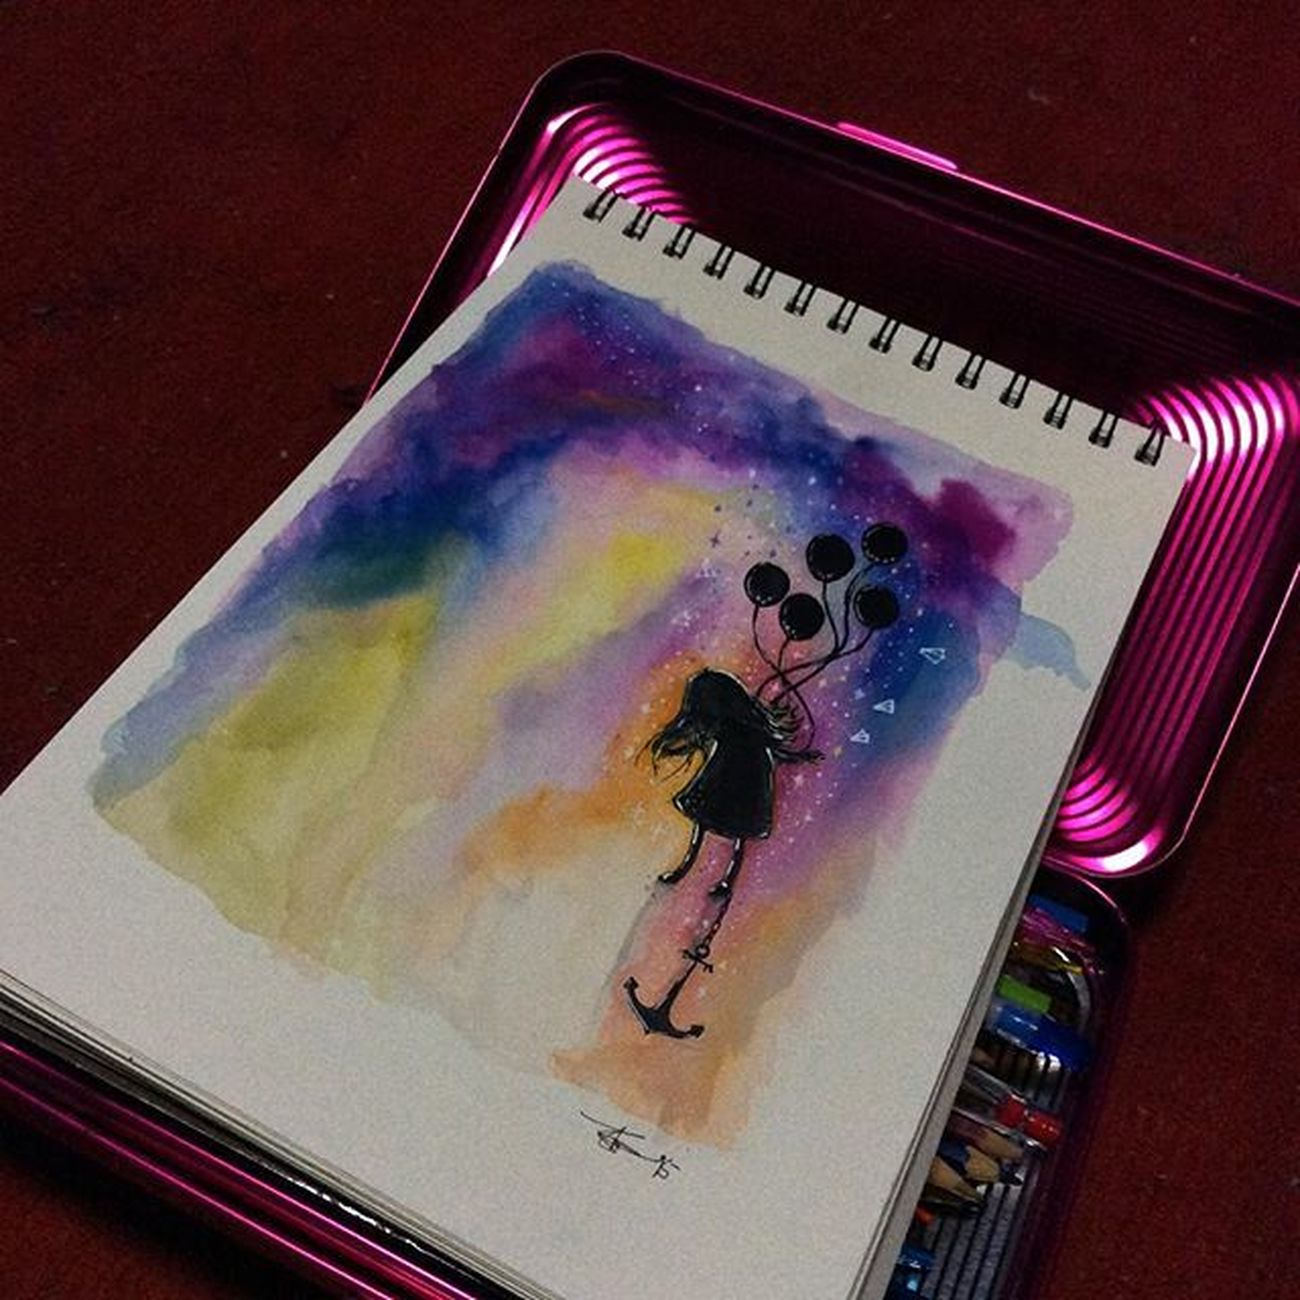 happy thoughts Repost Talentedpeopleinc Spotlightonartists Art_spotlight Worldofartists Proartists Tacart Art_cola Dailyartistiq Artworksfever Arts_help Justartshares Nawden  Theartslovers Featuregalaxy Sketchbook Imaginationarts Official_art_page Watercolor Drawing Talntsart Talnts Artsupporting